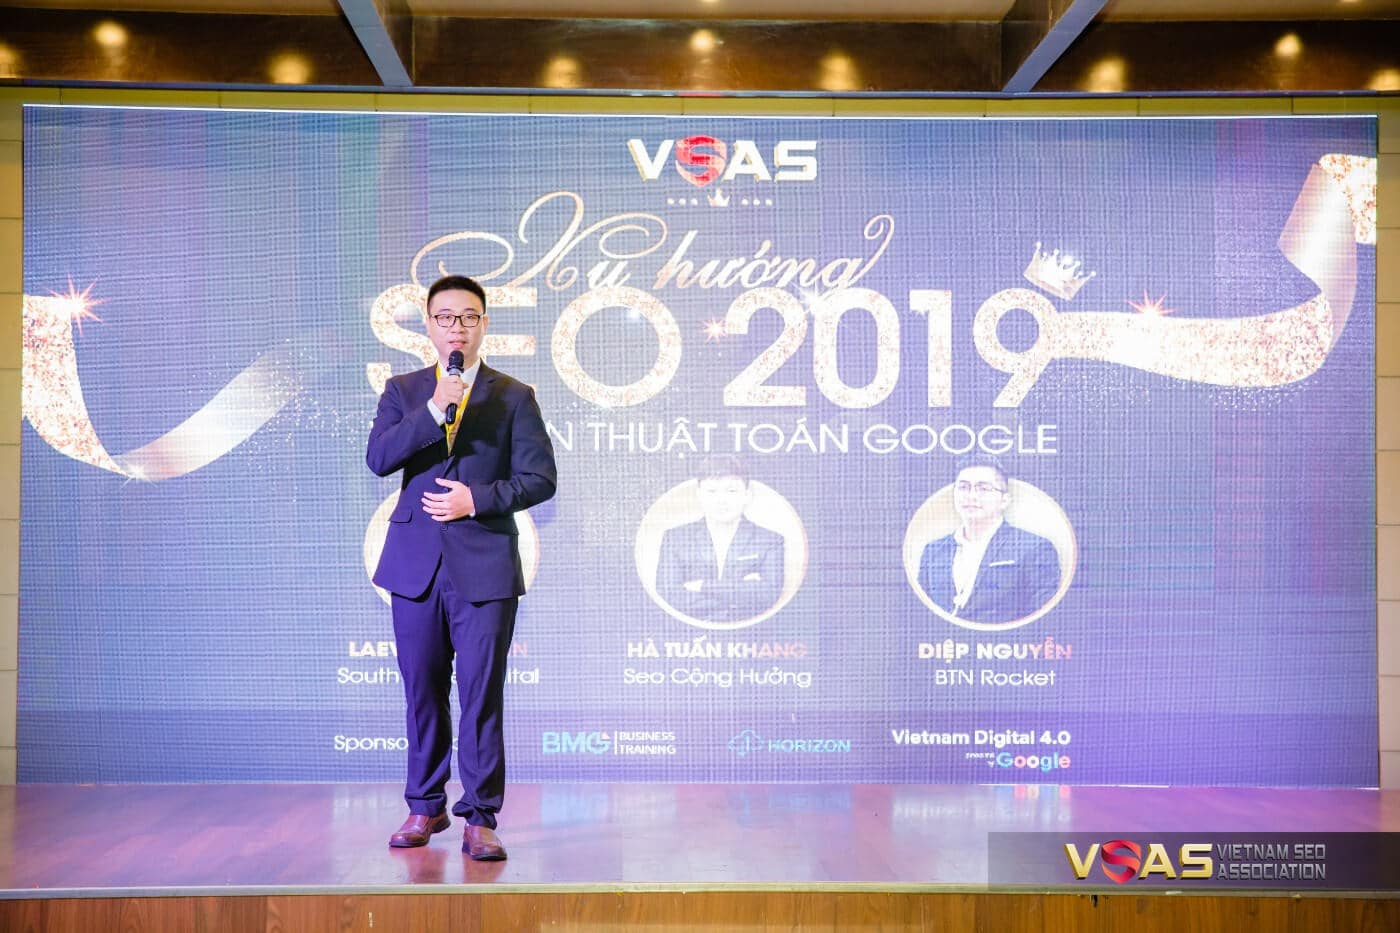 Laevis Nguyễn - Founder của South Edge Digital